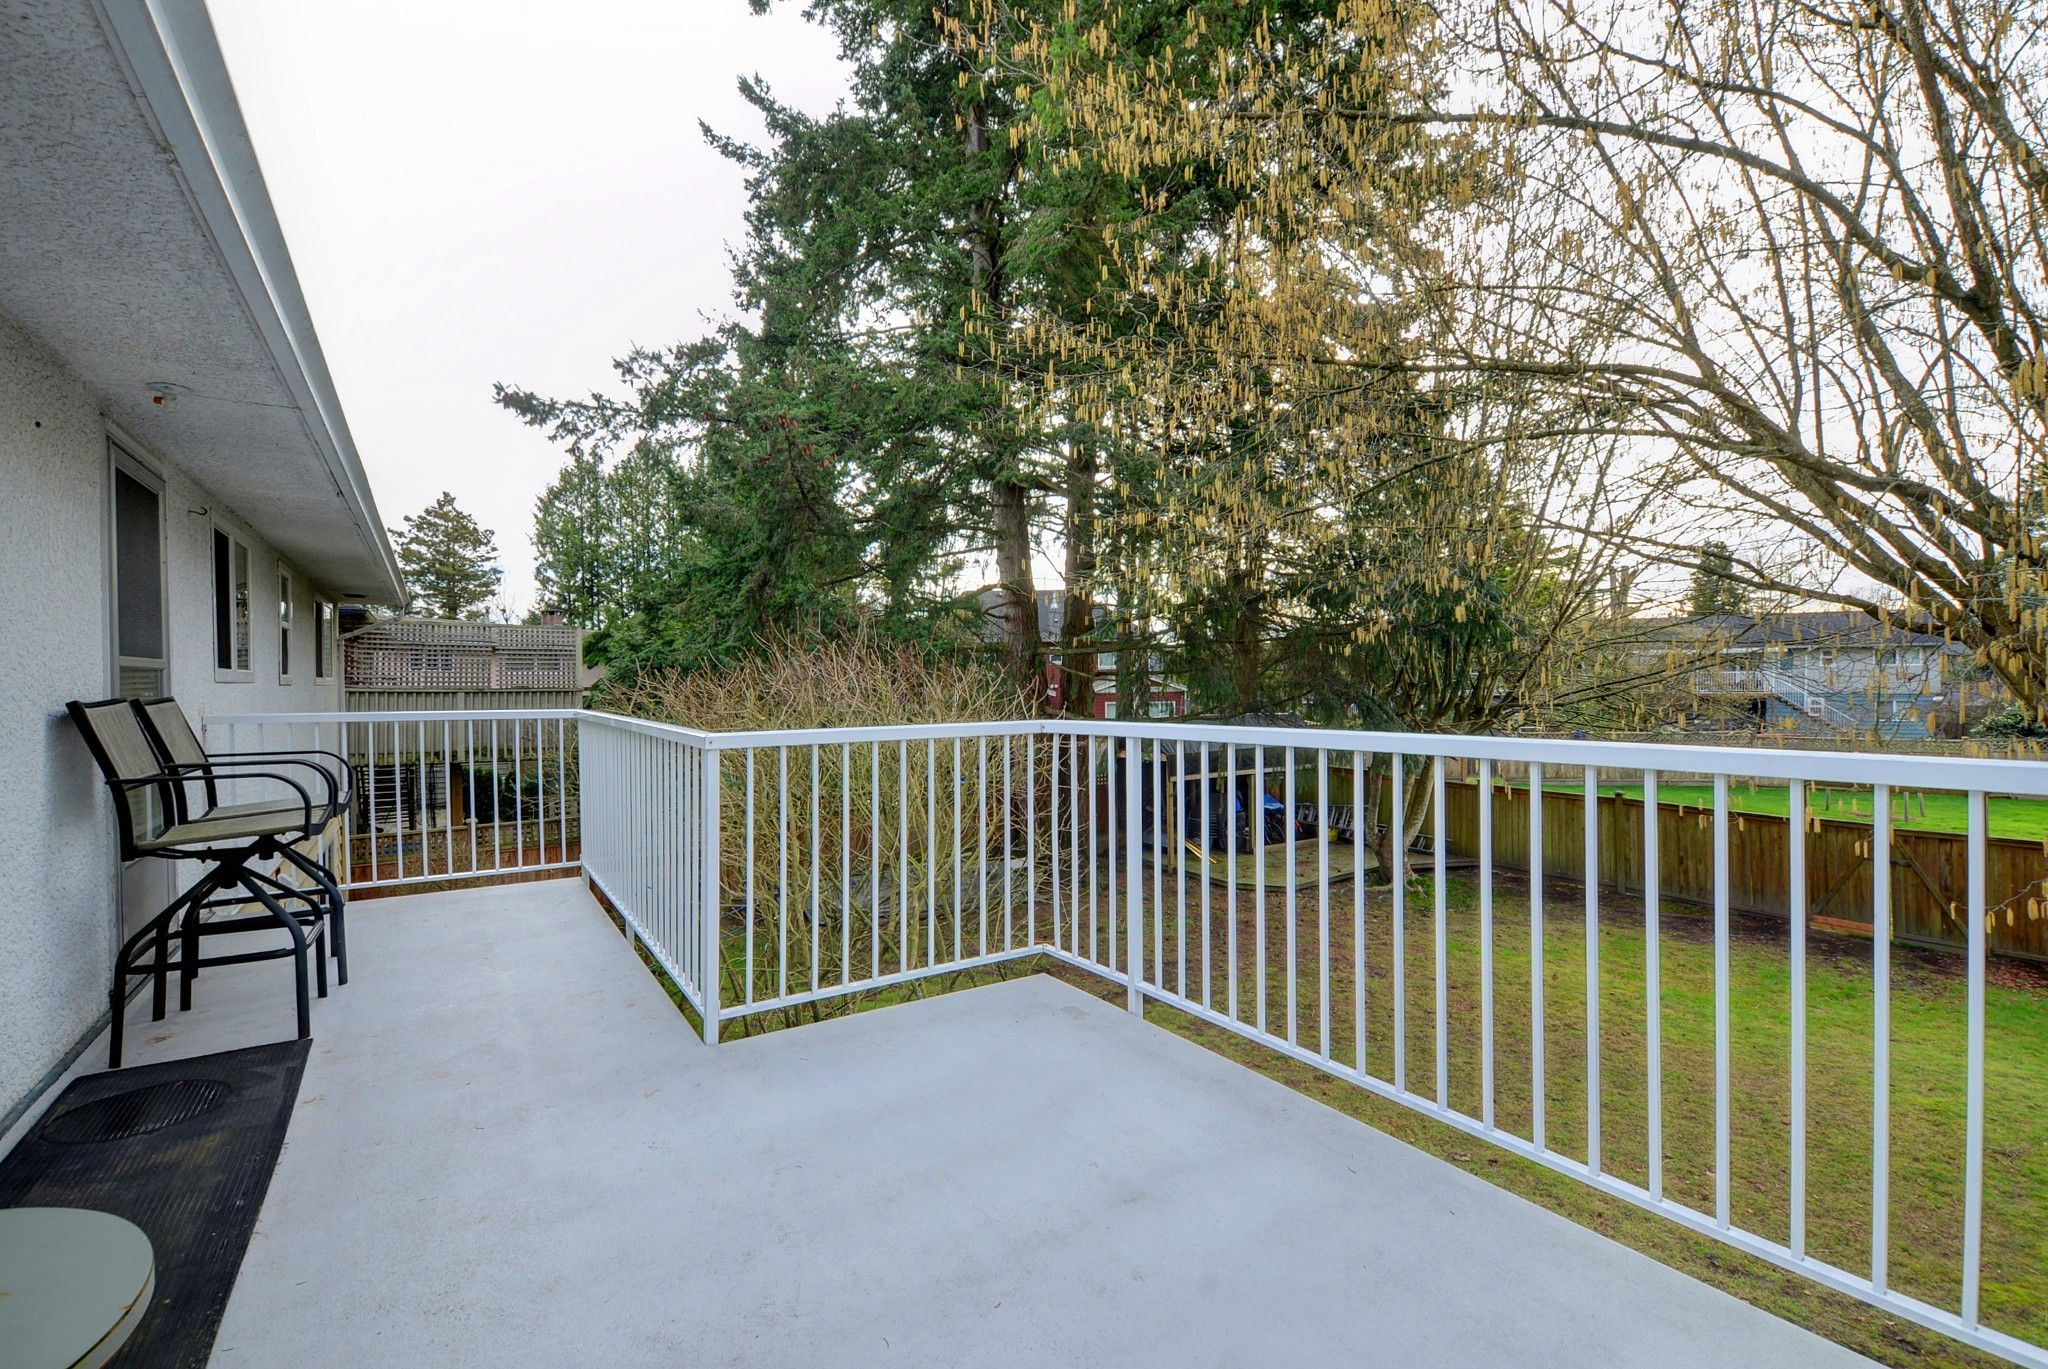 Photo 19: Photos: 5166 44 Avenue in Delta: Ladner Elementary House for sale (Ladner)  : MLS®# R2239309